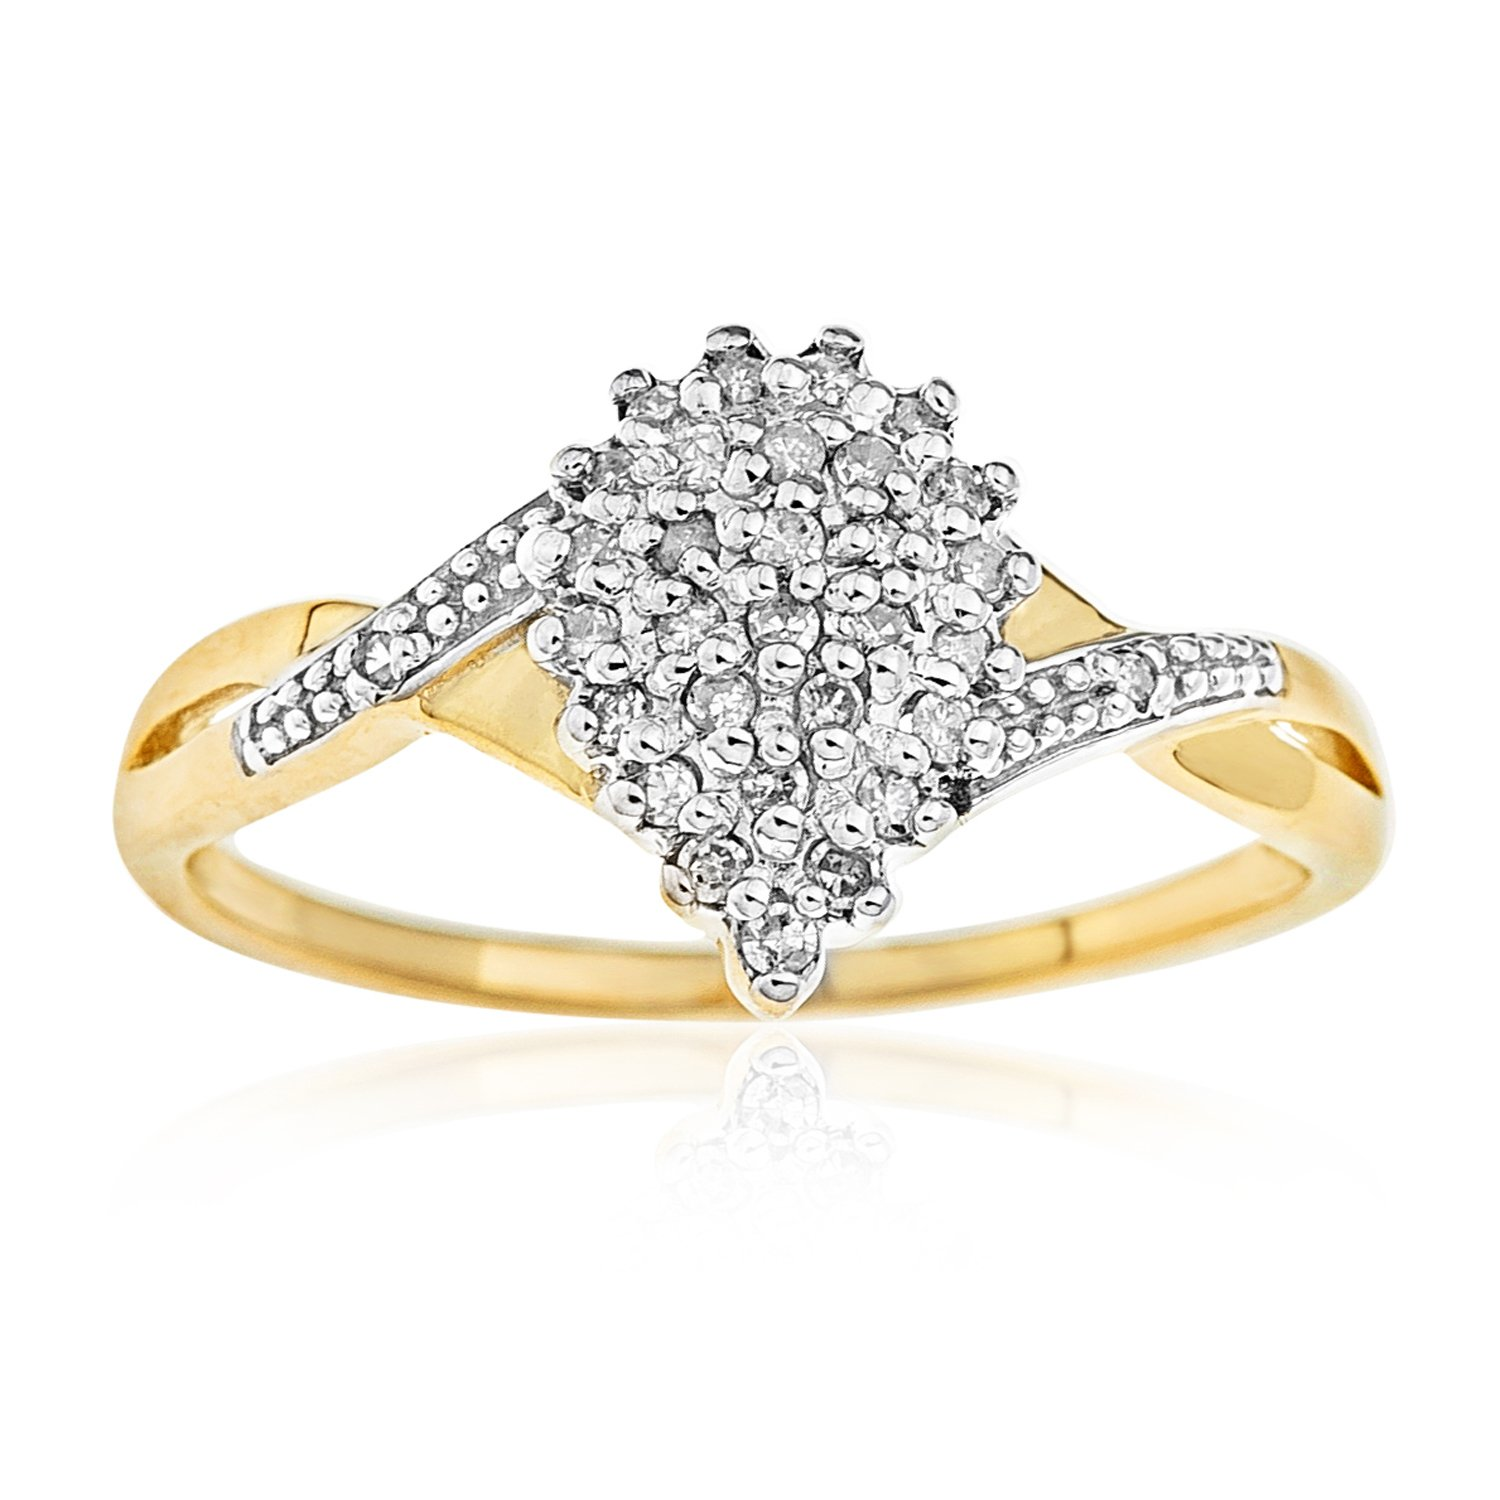 pdp buyewa engagement online diamond ring wedding johnlewis lewis com cluster gold ewa white john rings main at rsp